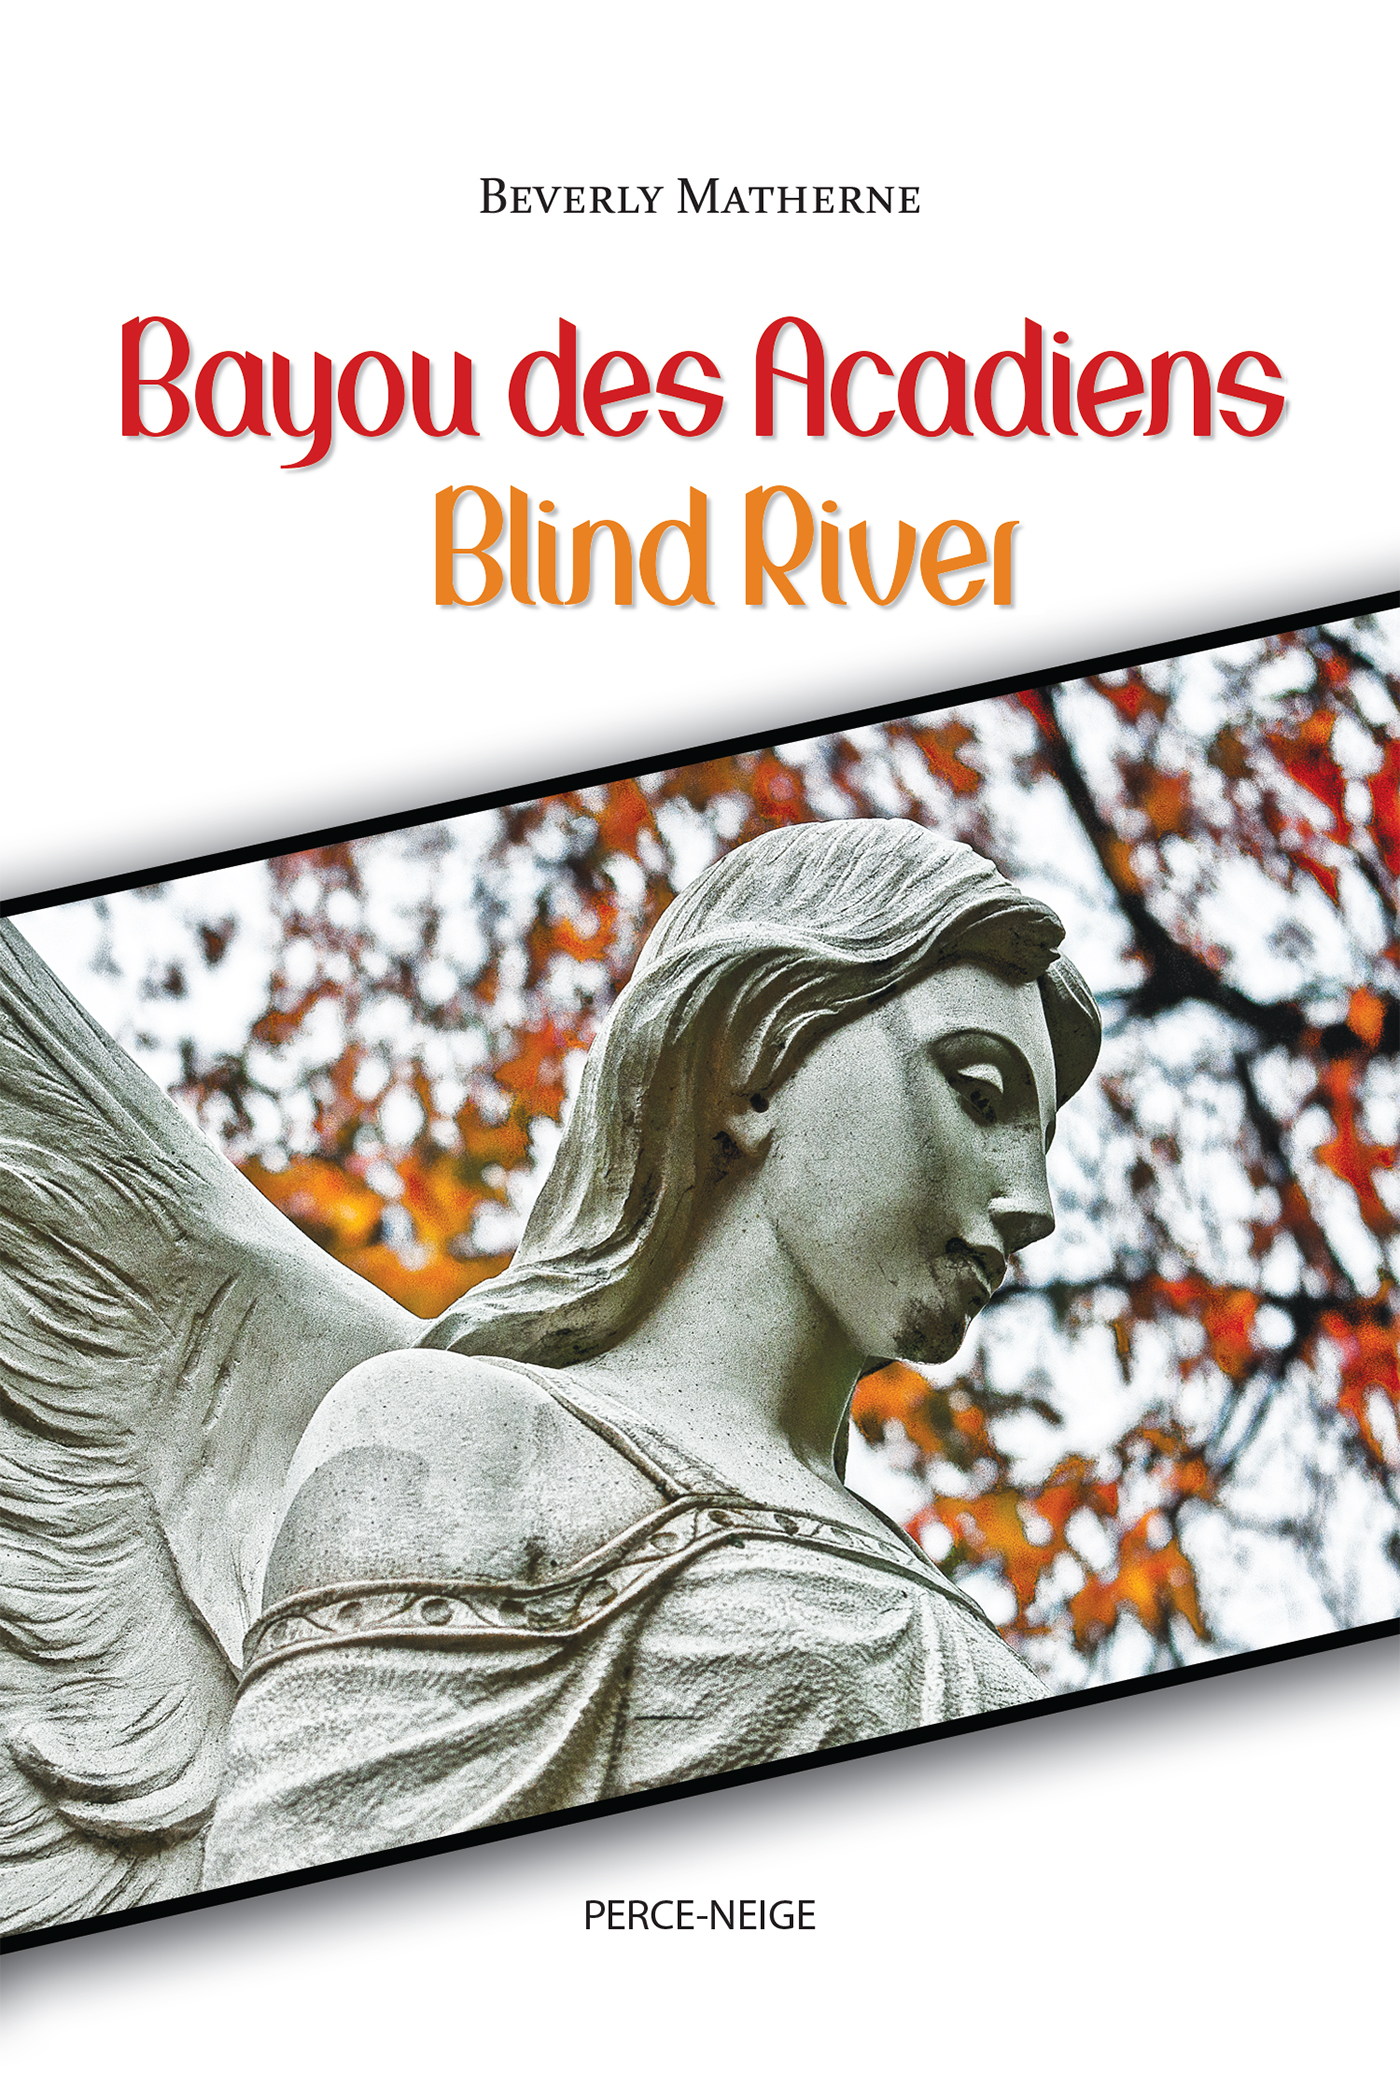 Bayou des Acadiens = Blind River